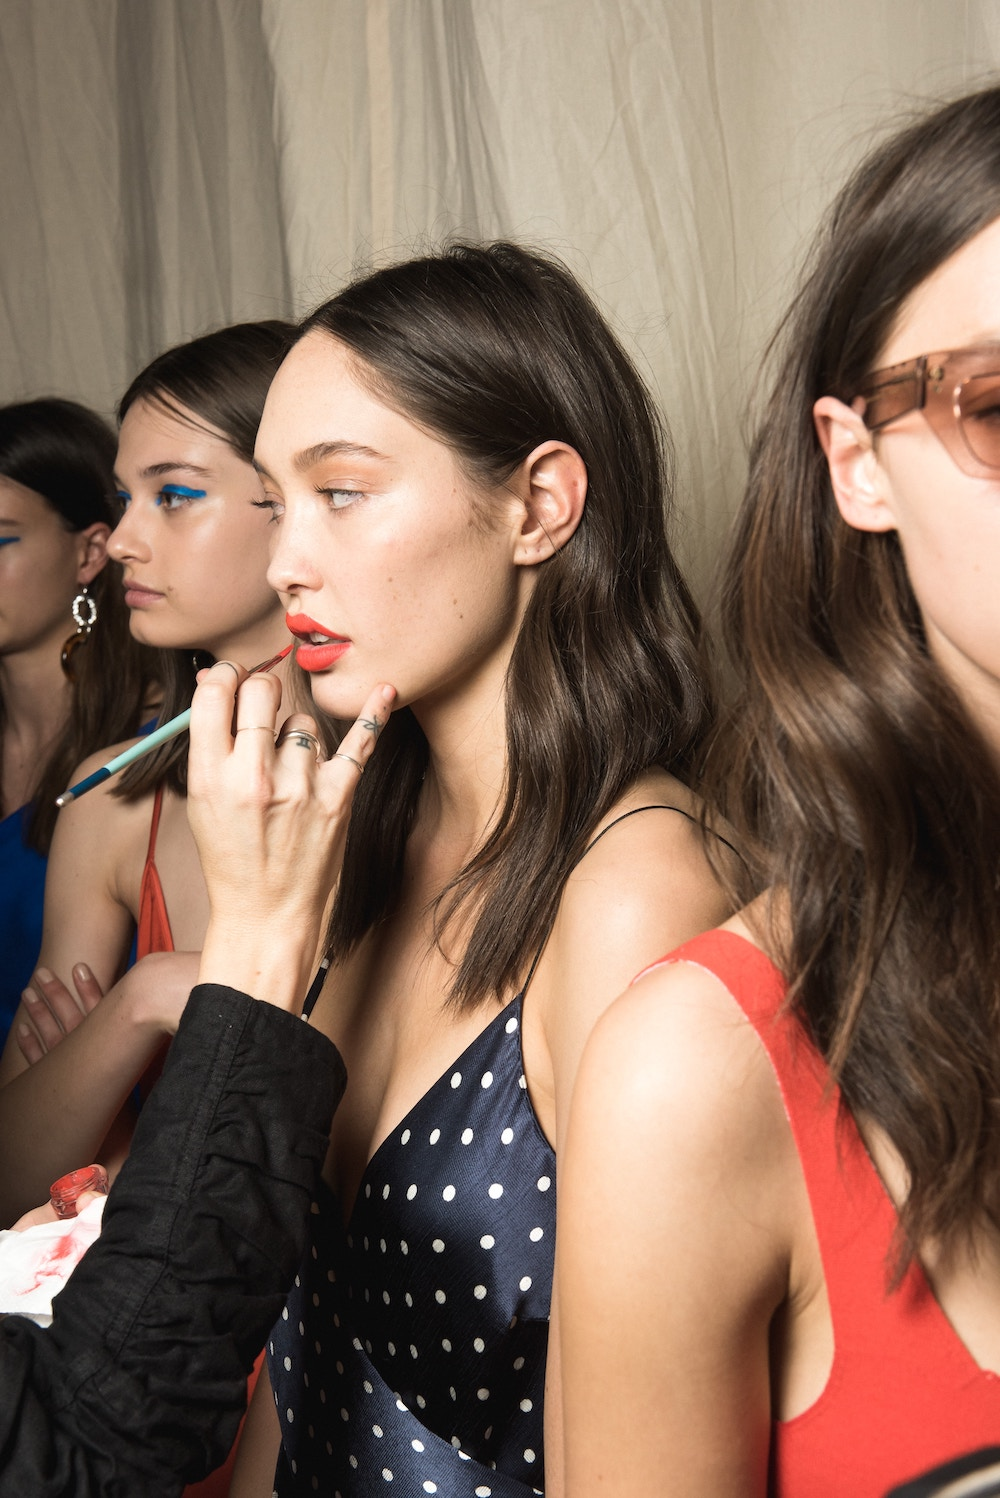 backstage at a fashion show models